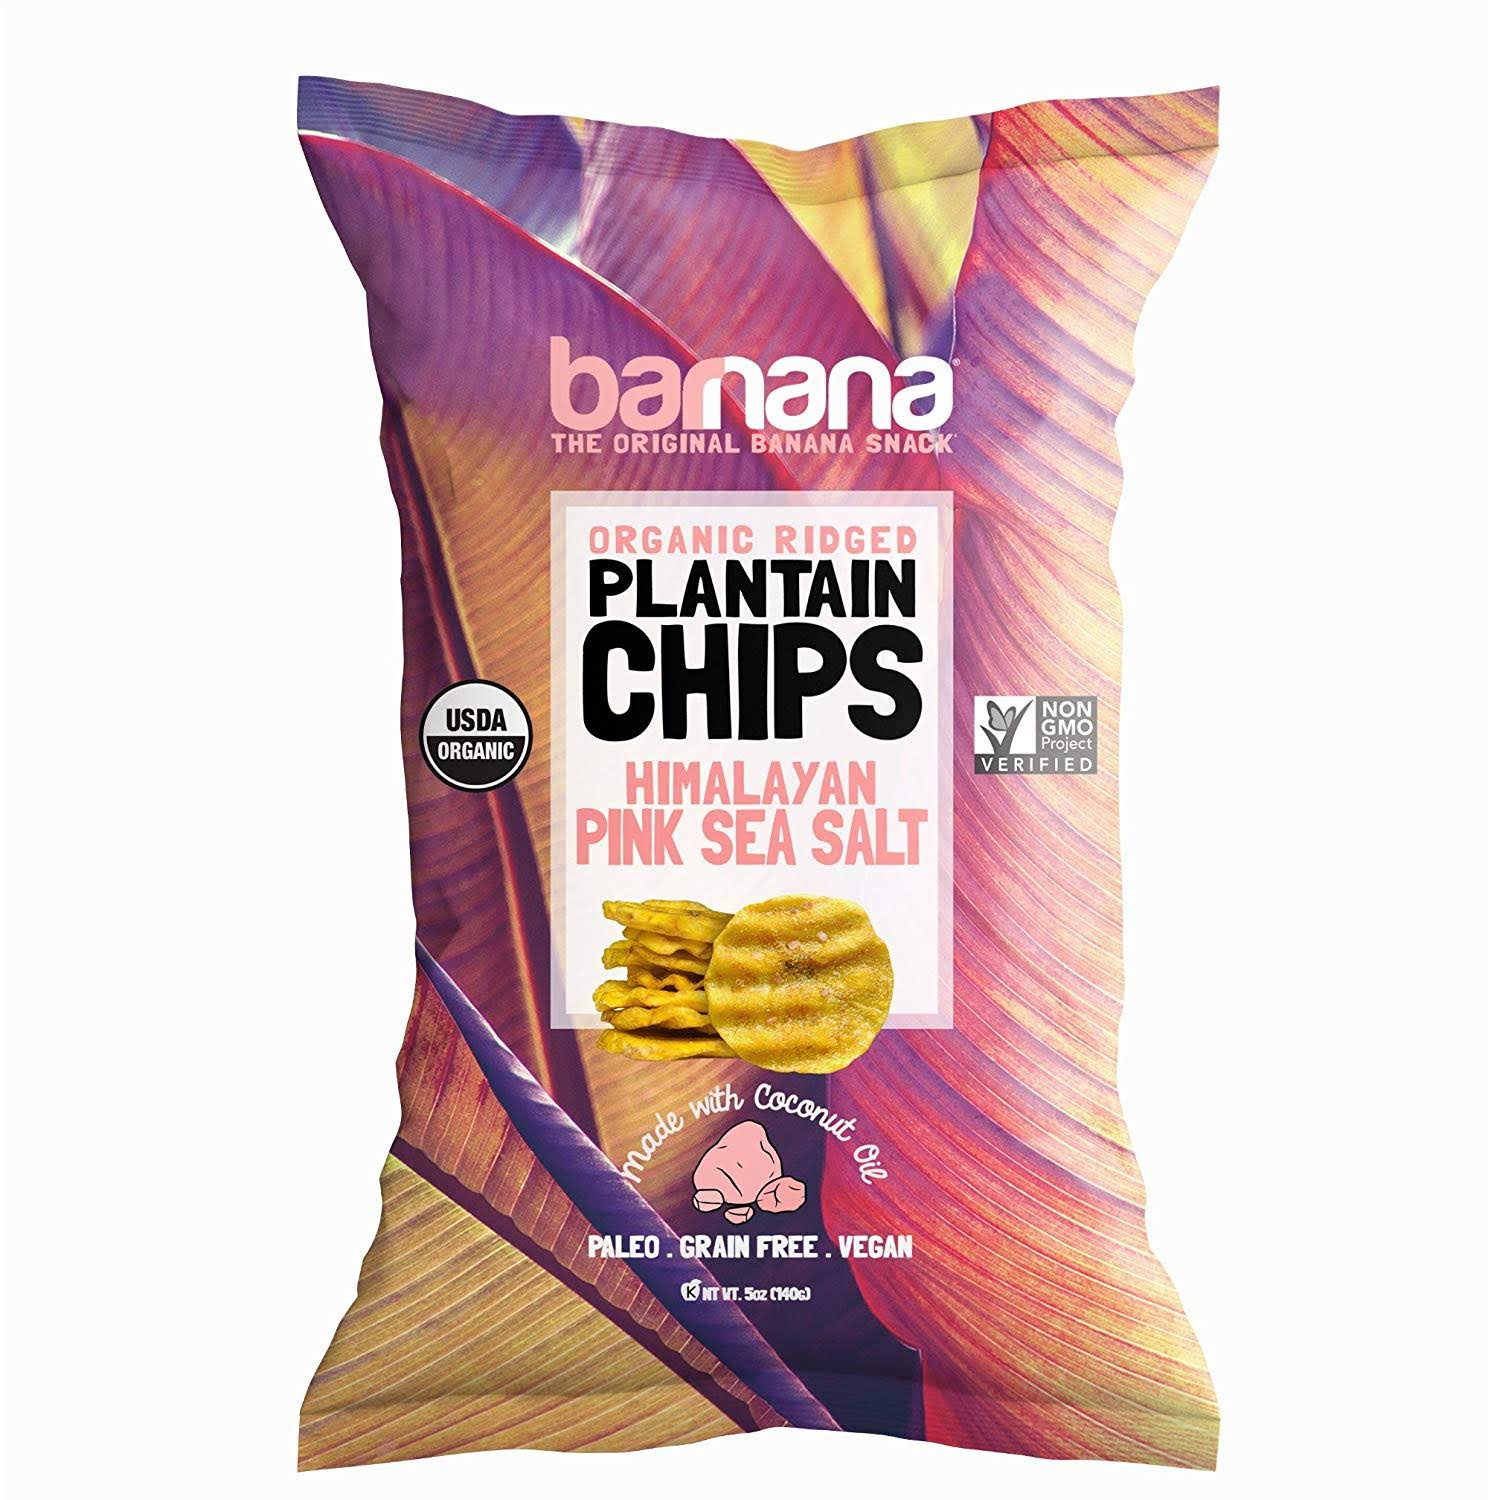 Barnana Plaintain Chips, Organic, Himalayan Pink Sea Salt, Ridged - 5 oz